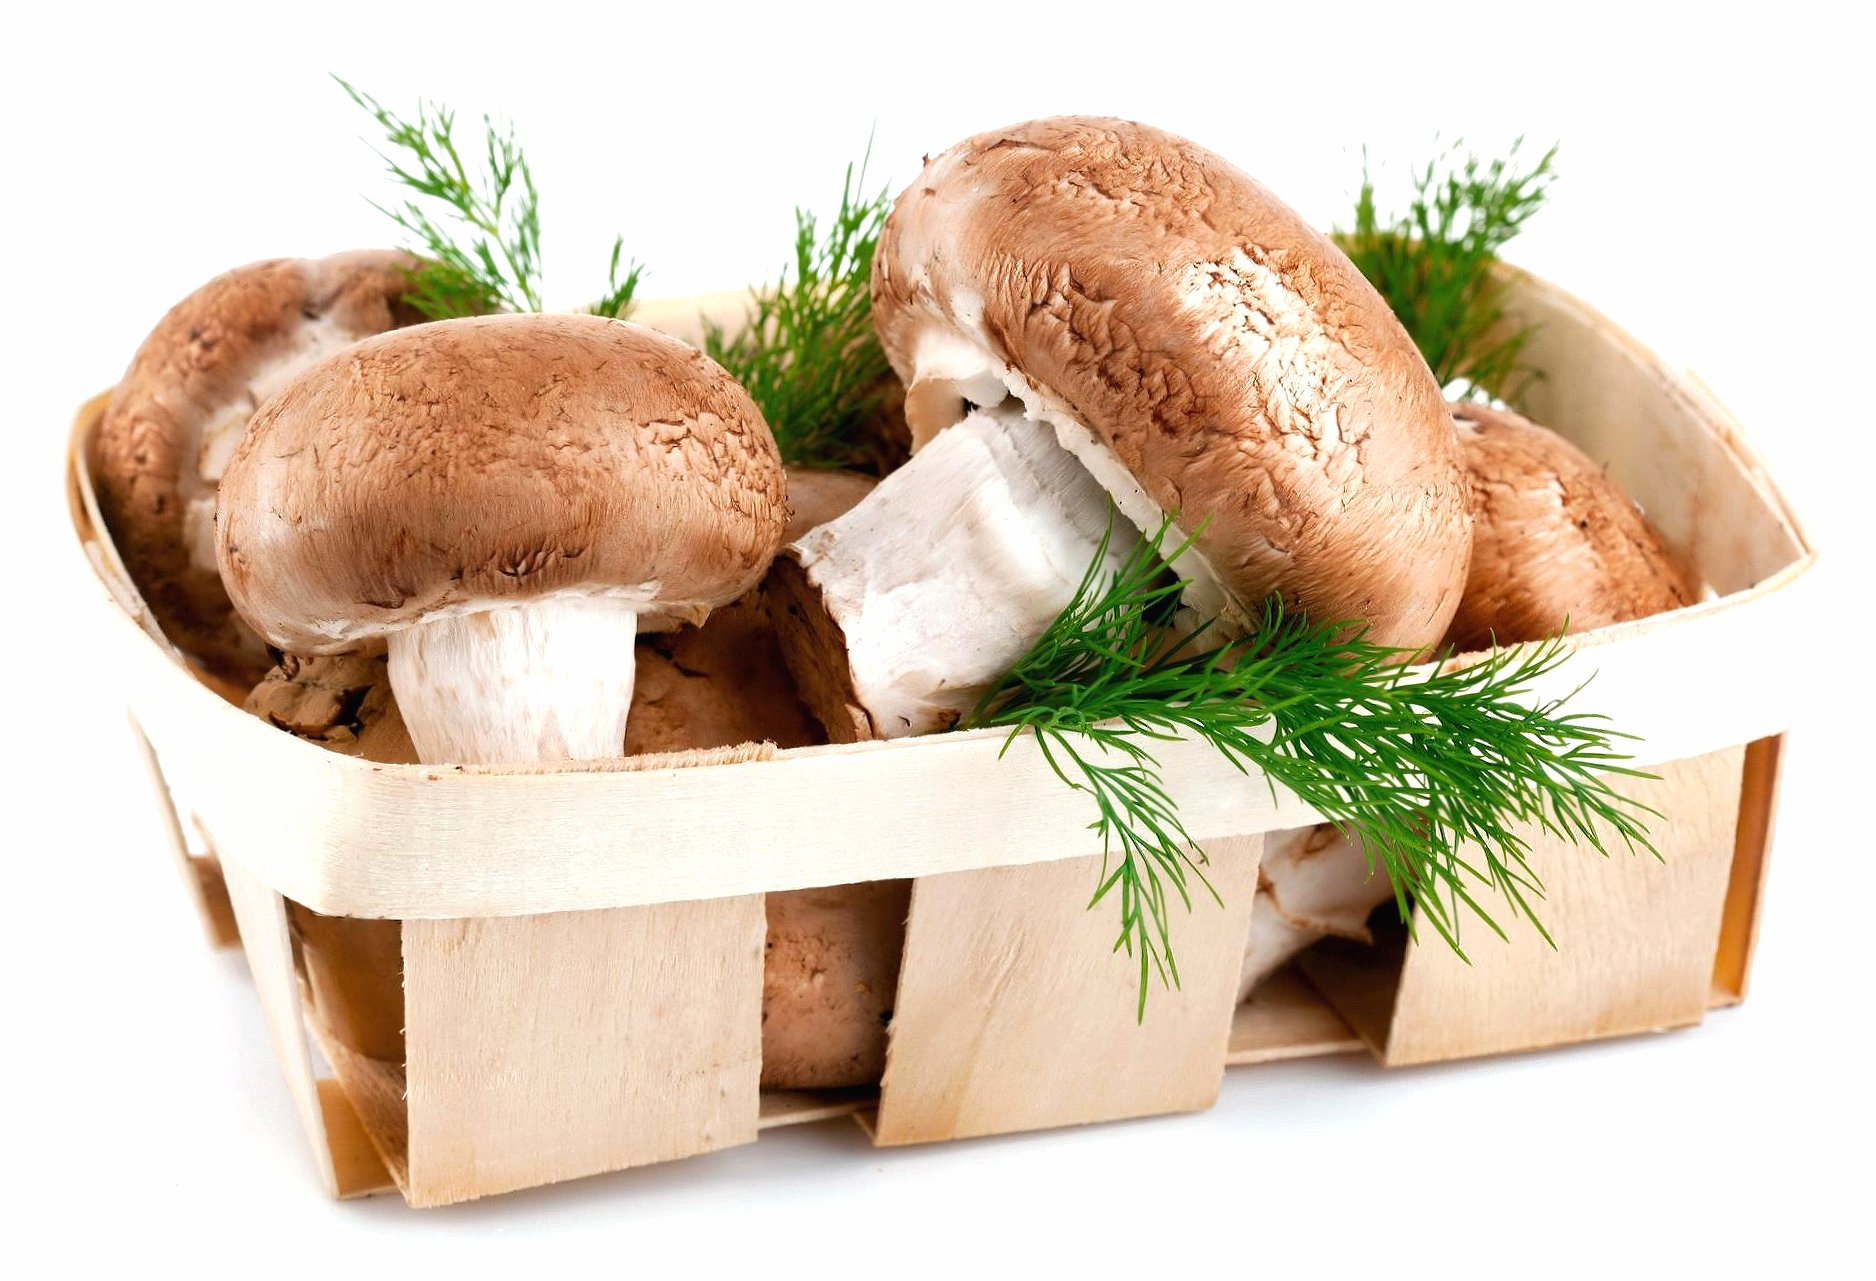 Little basket of mushrooms wallpapers HD quality